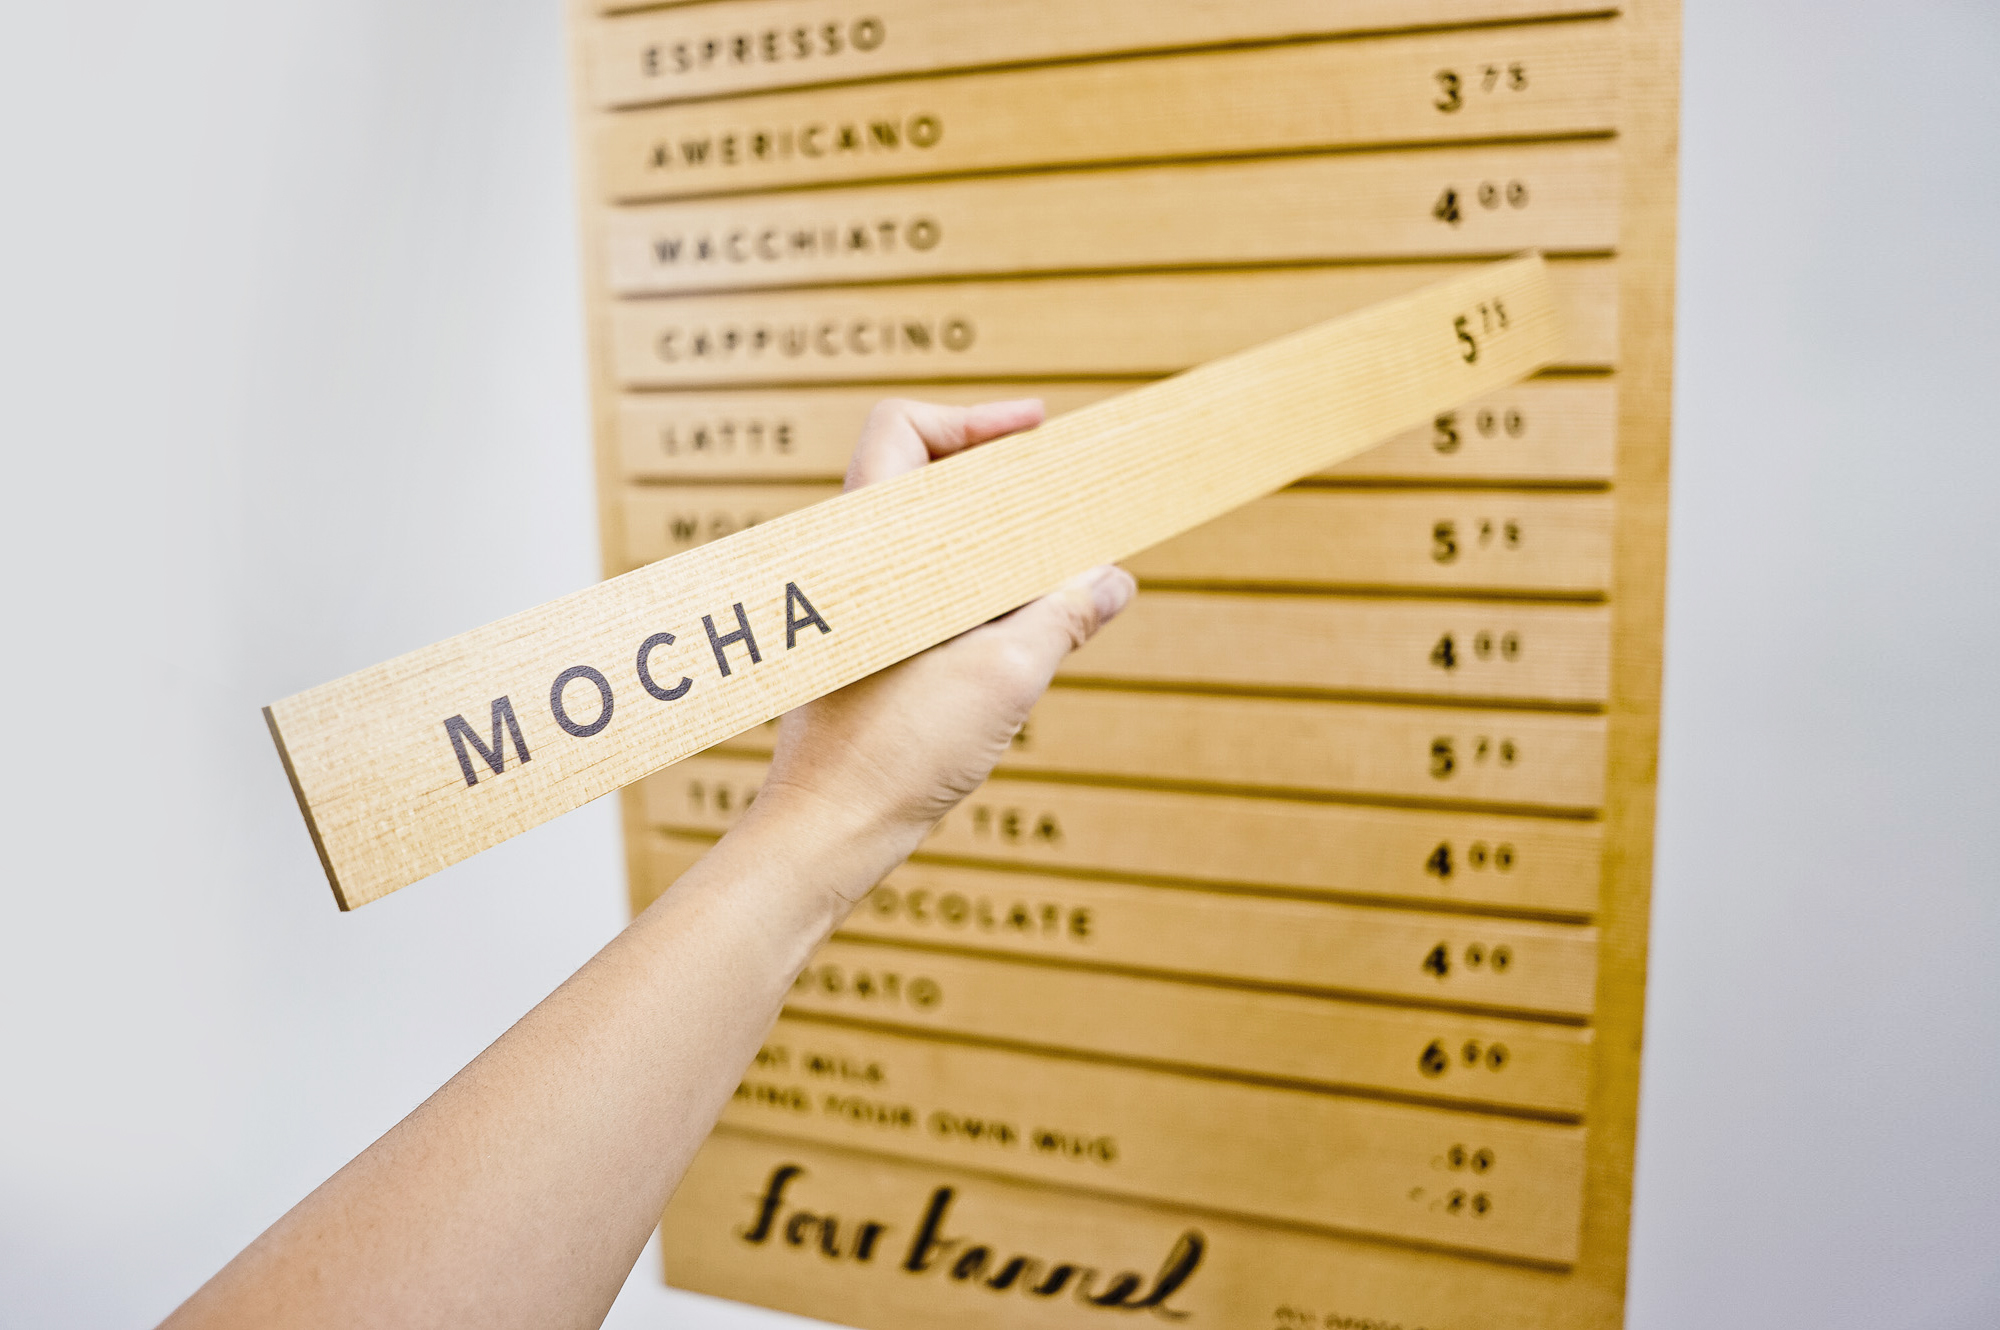 Wood menu with changeable items for Four Barrel, an independent coffee company based in San Francisco.